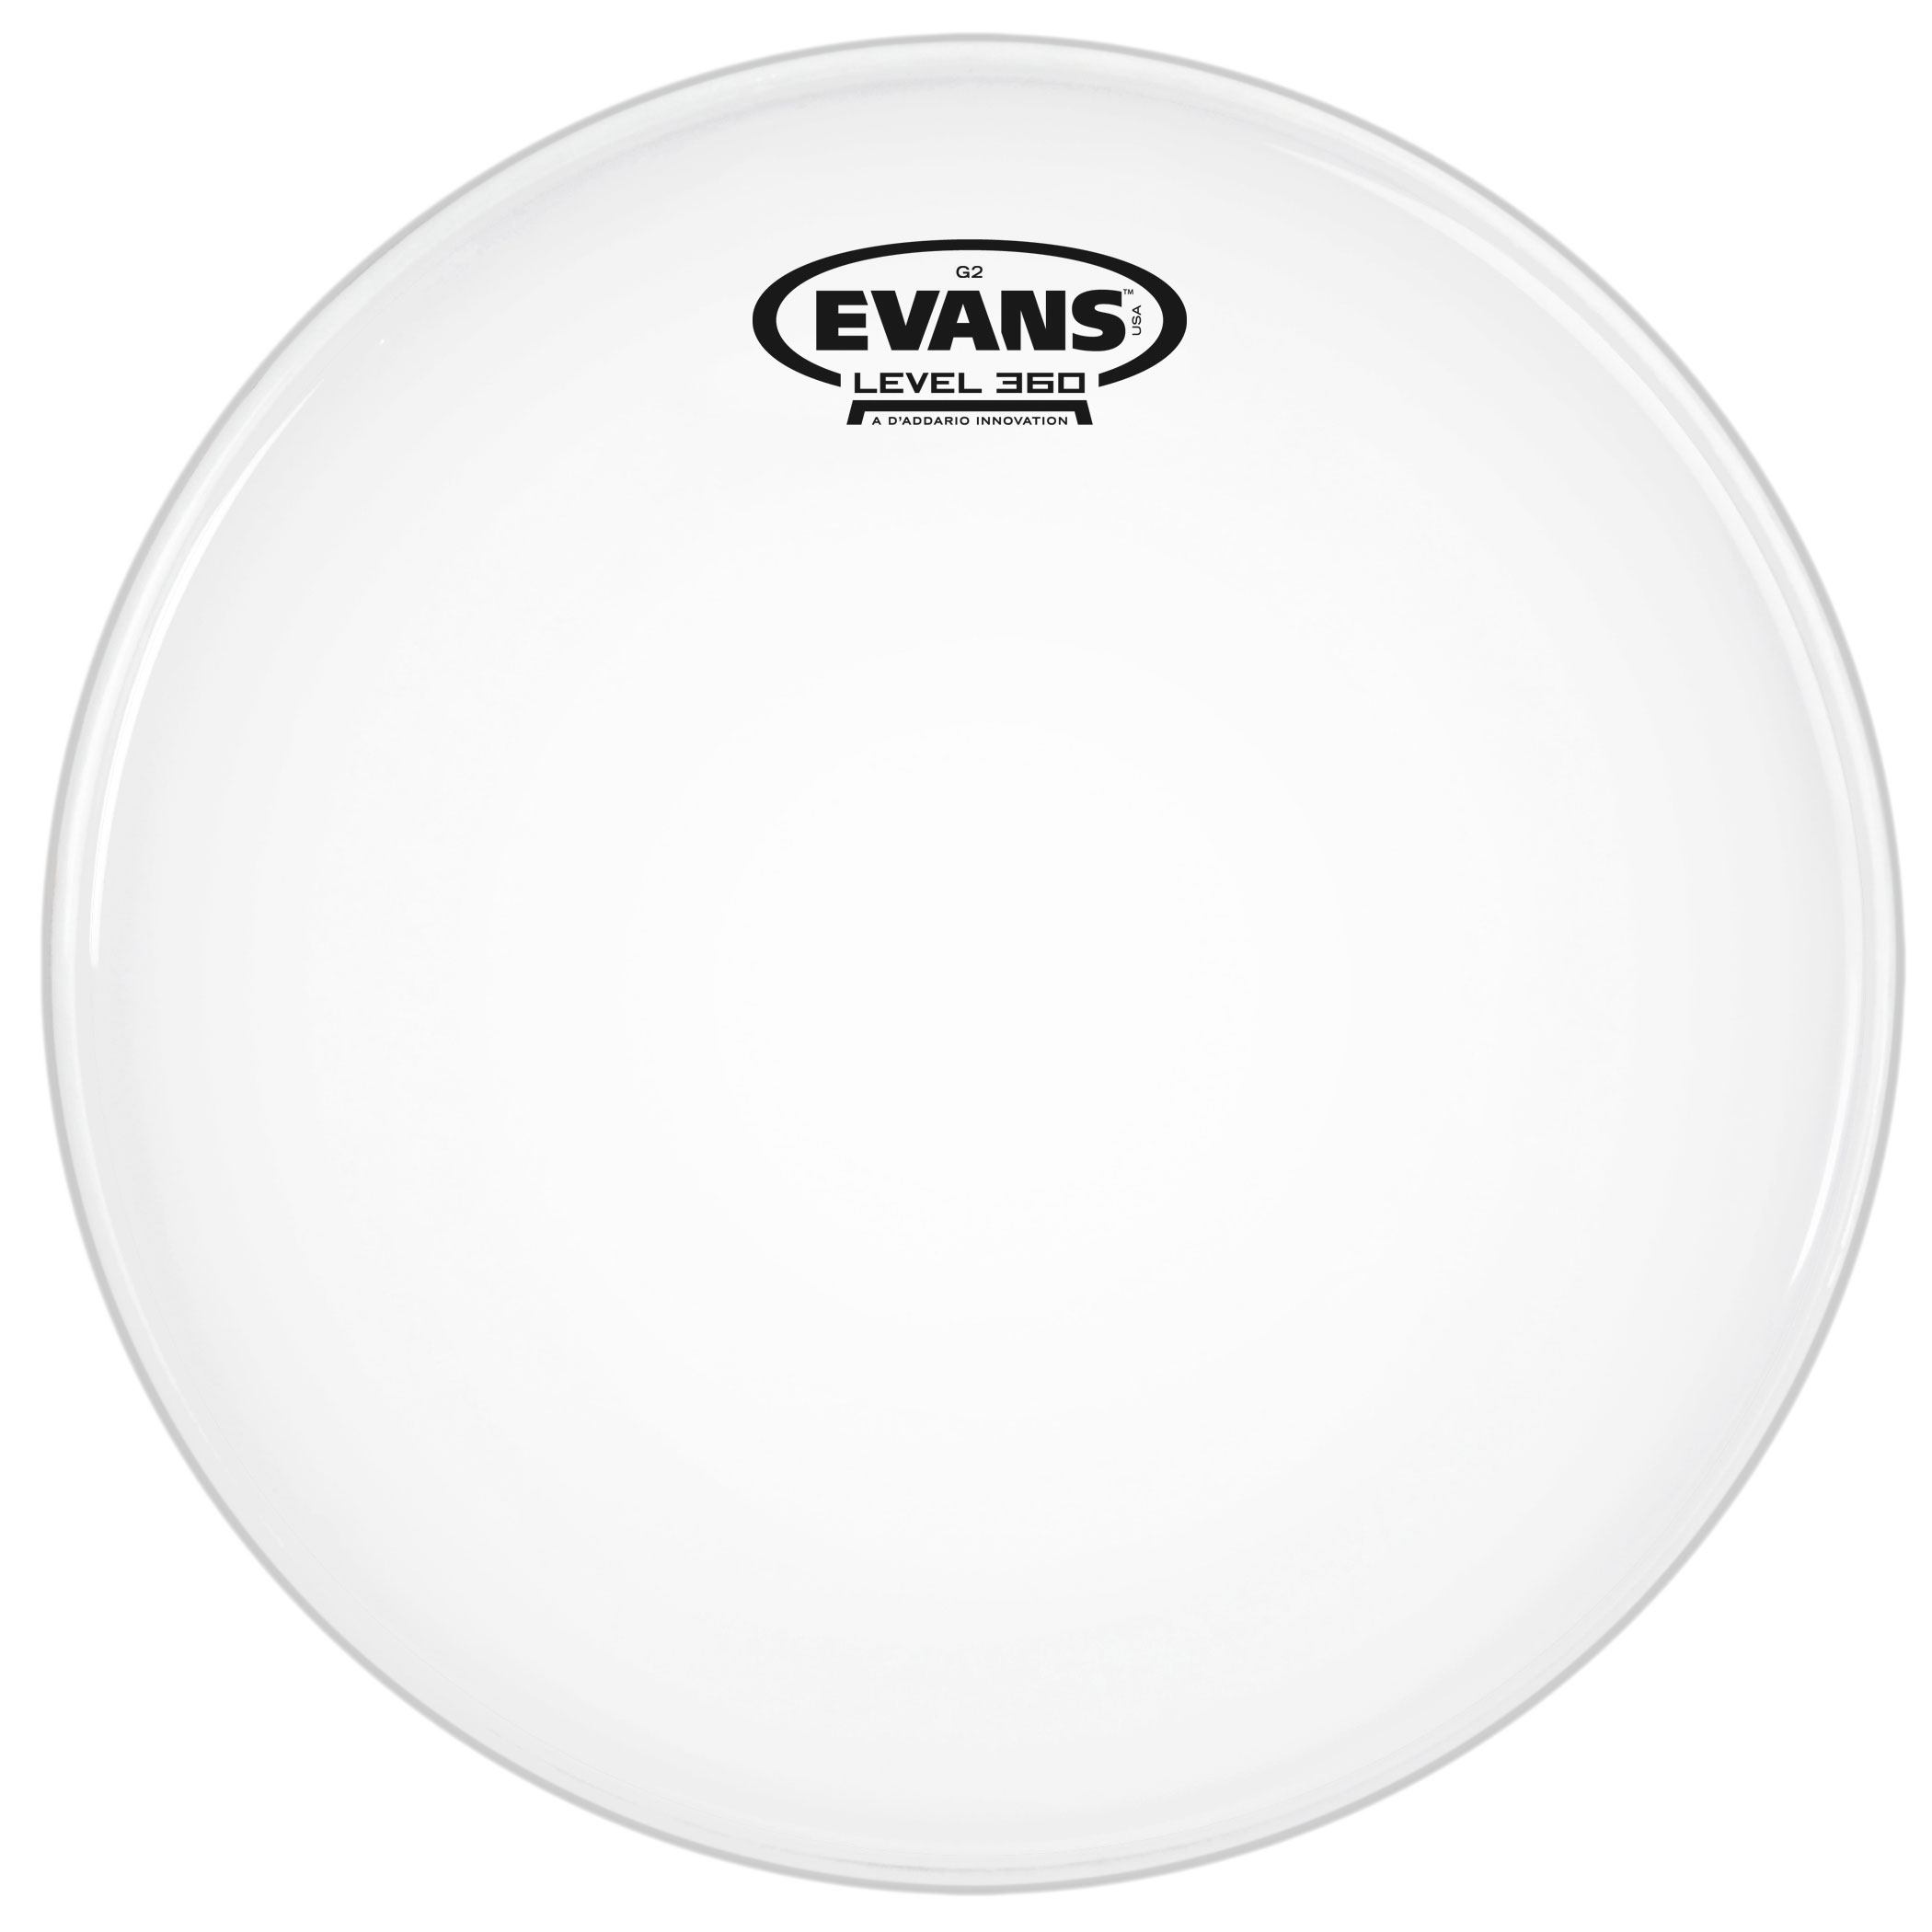 "Evans 12"" G2 Coated Head"